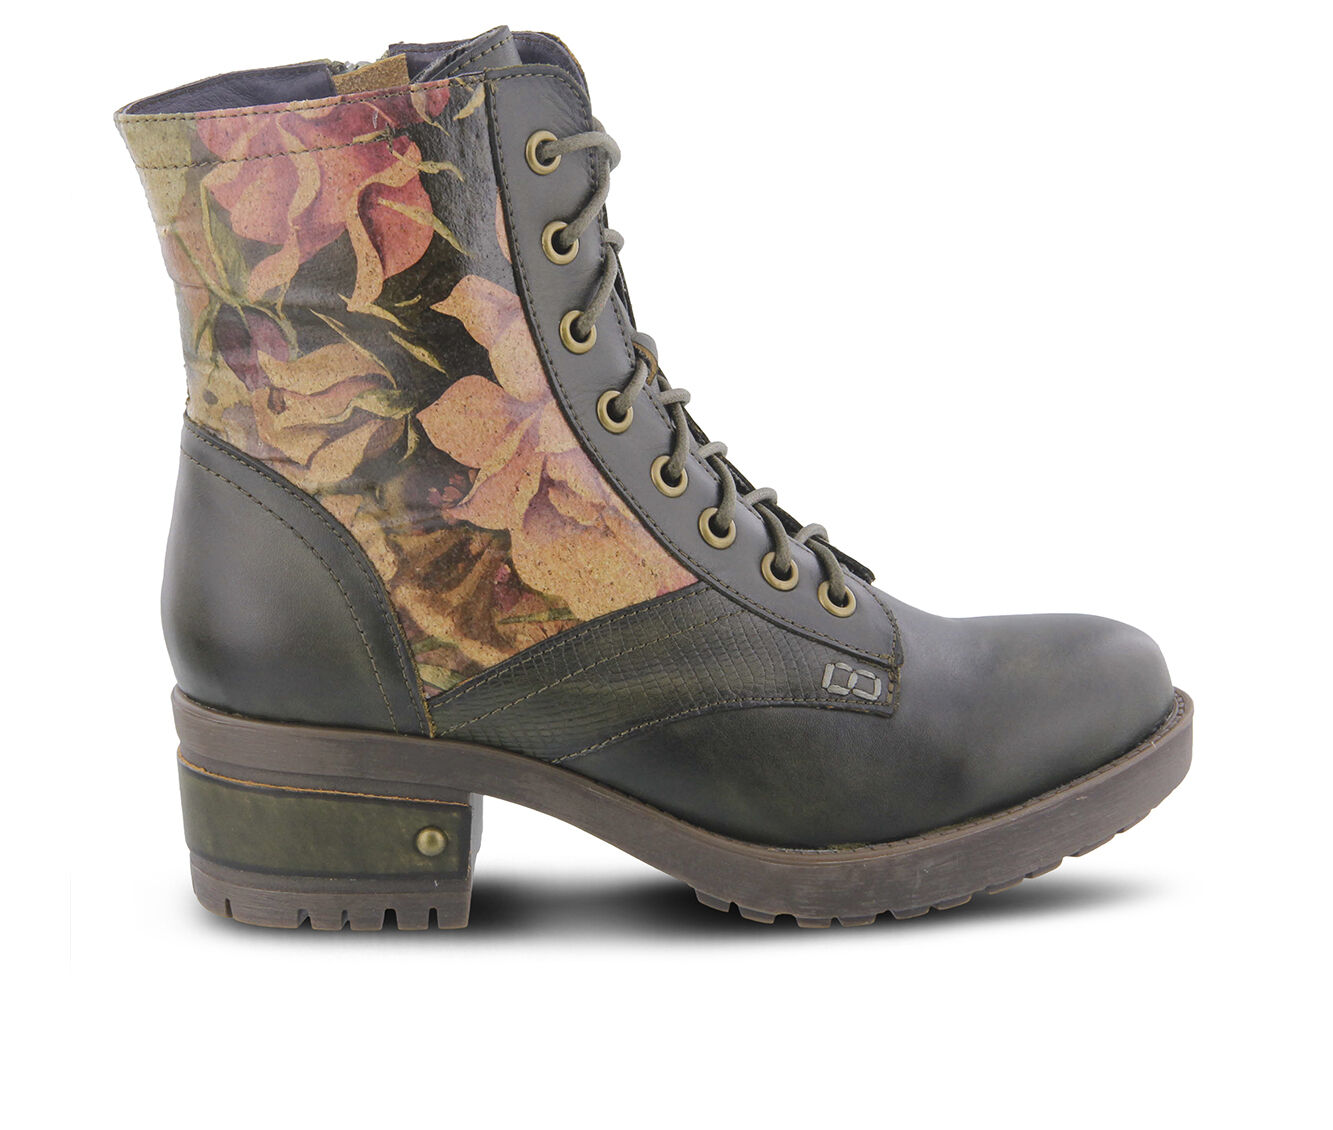 Delicate styles Women's L'ARTISTE Marty Hiking Boots Olive Green